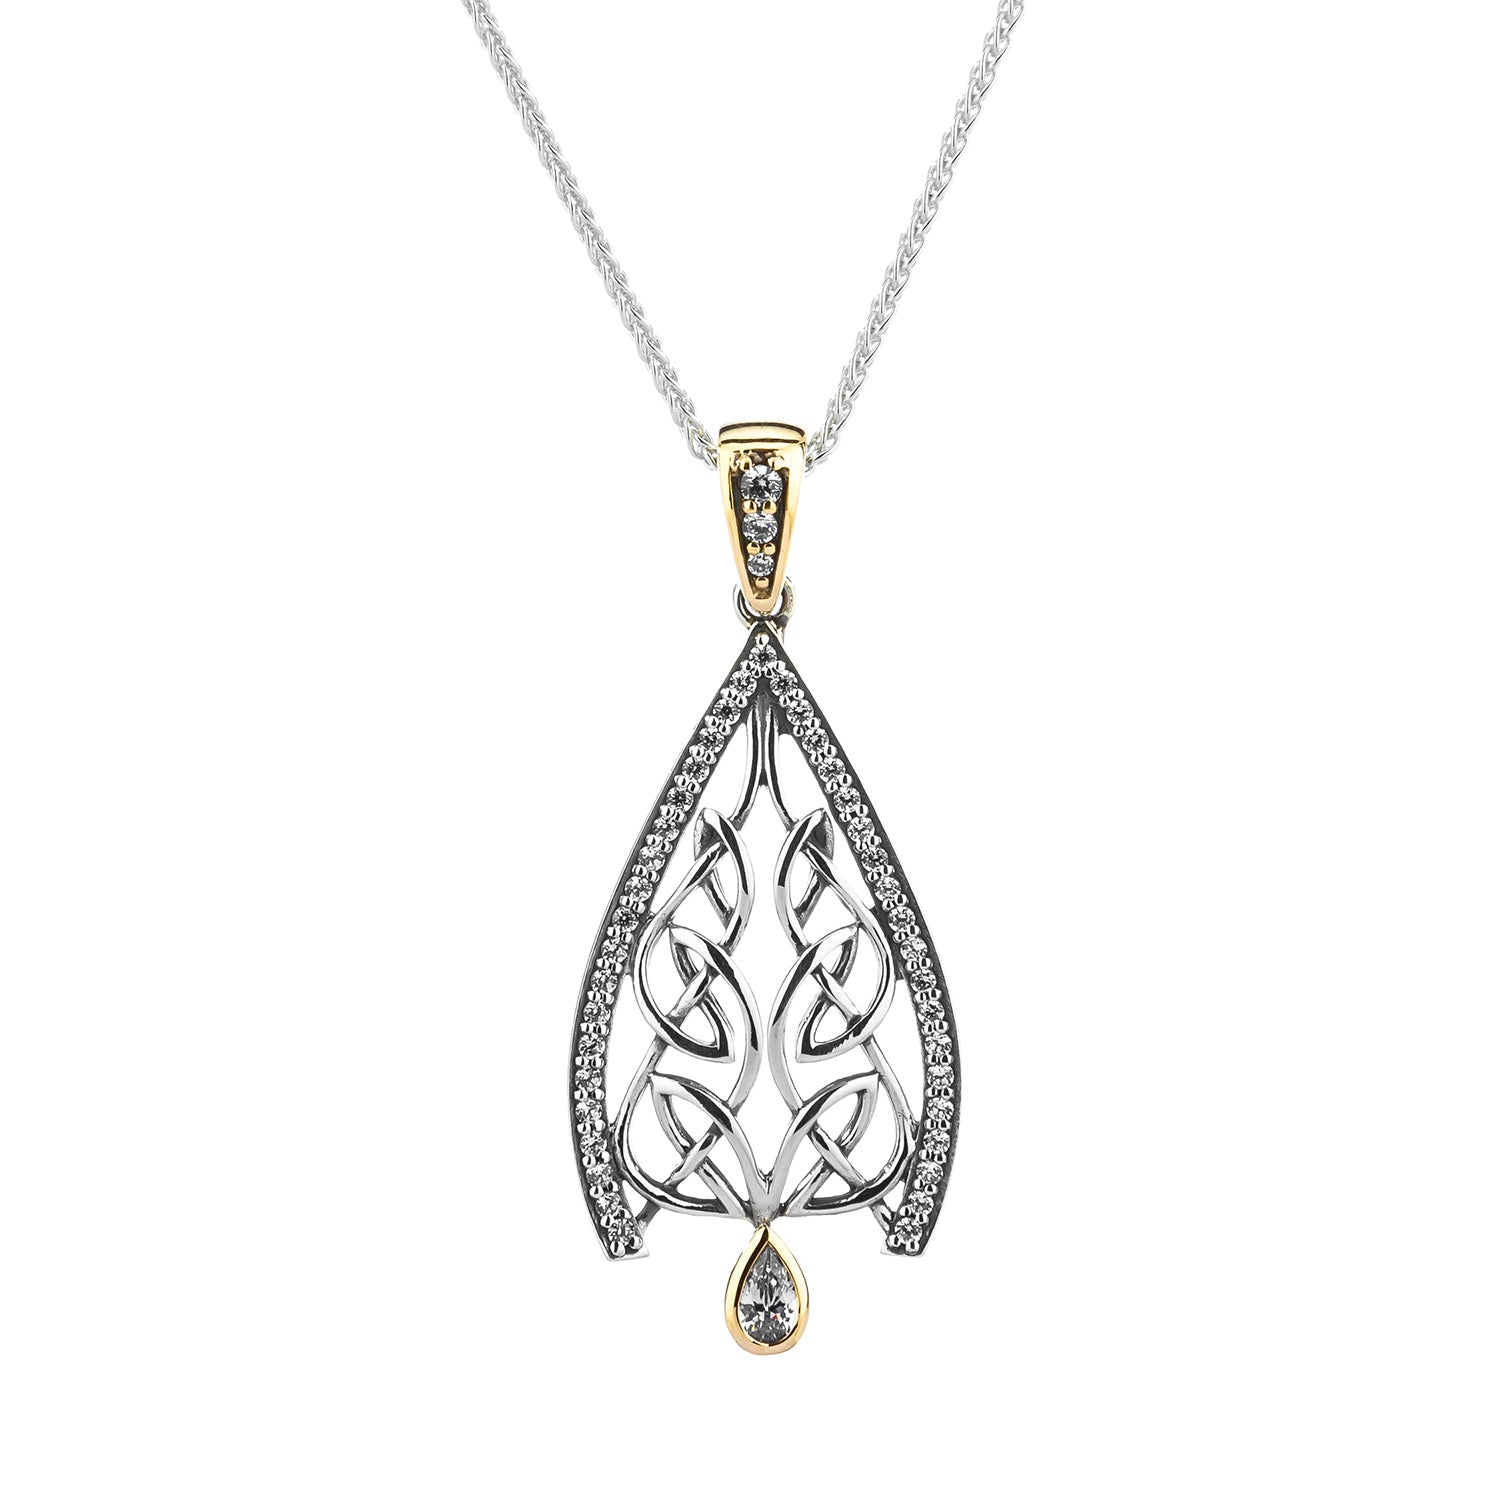 Pendant 10k CZ Dew Drop Gateway Small Pendant from welch and company jewelers near syracuse ny